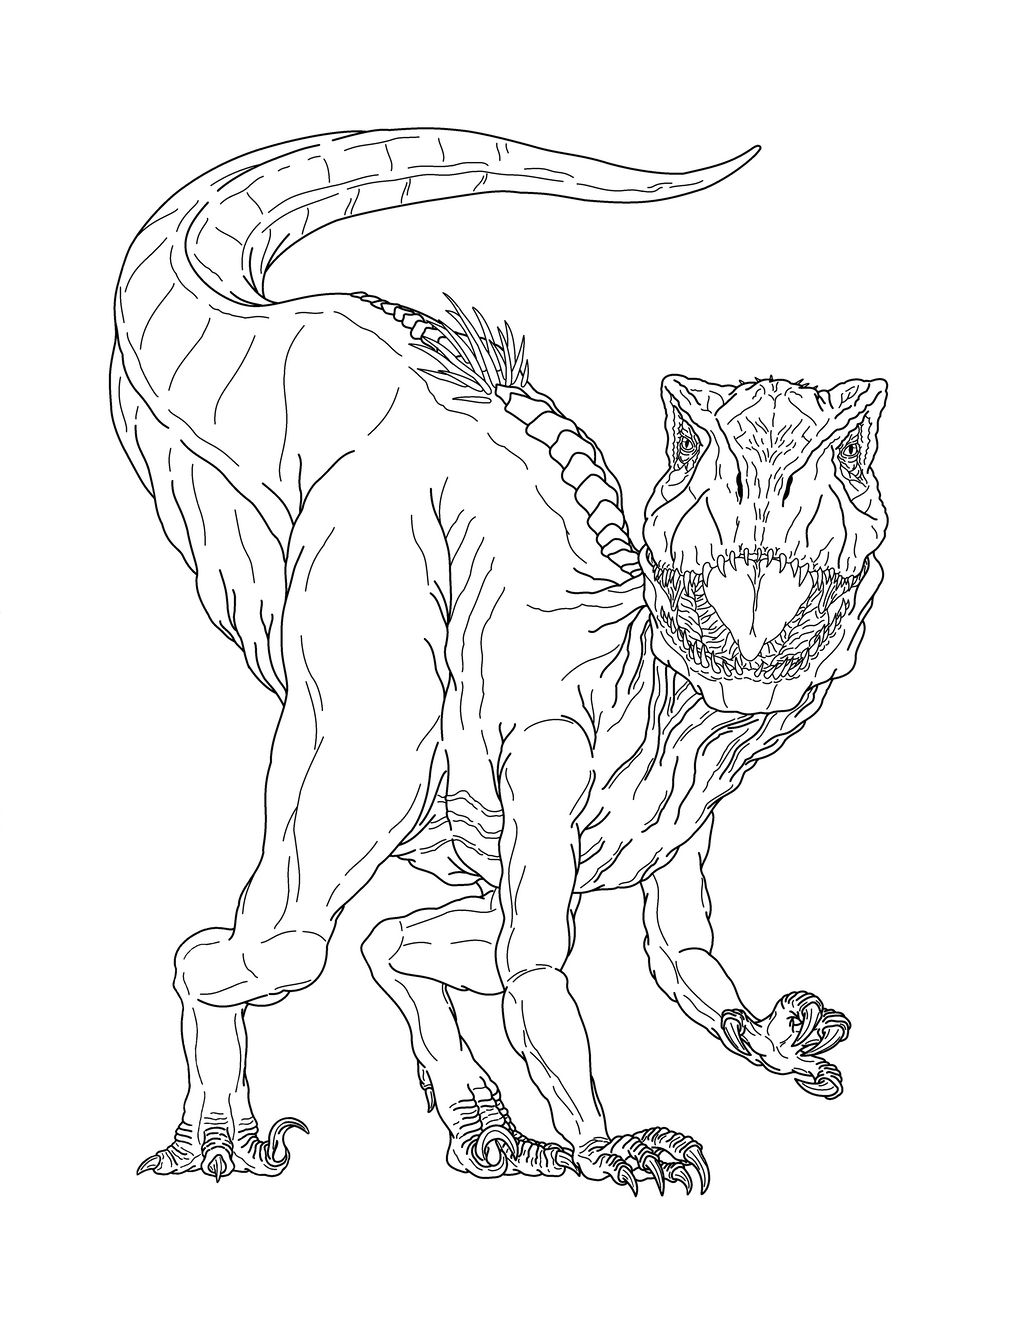 Jurassic World - Dr. Wu GIVEAWAY | Dinosaur coloring pages, Lego ... | 1343x1024